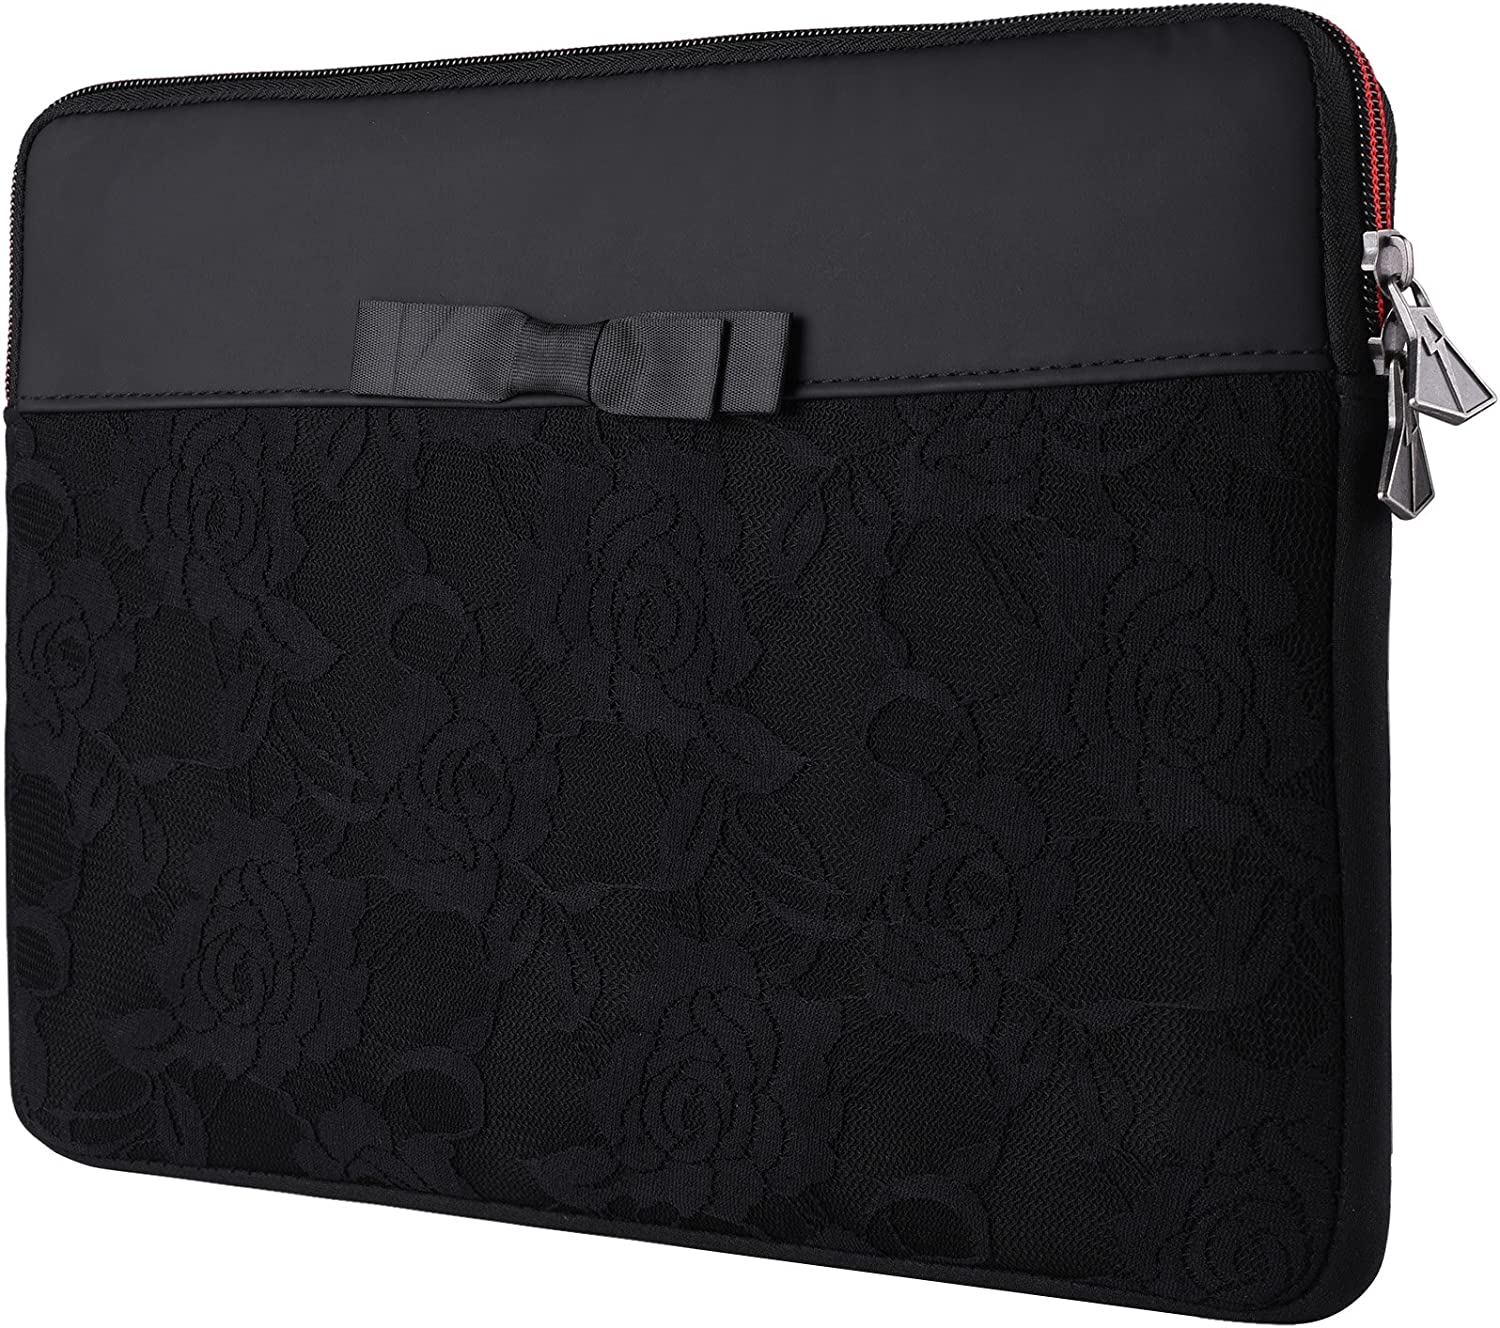 TXesign 13.3-Inch Laptop Sleeve Bag San Francisco quality assurance Mall Case in MacBook for Pro 13.3